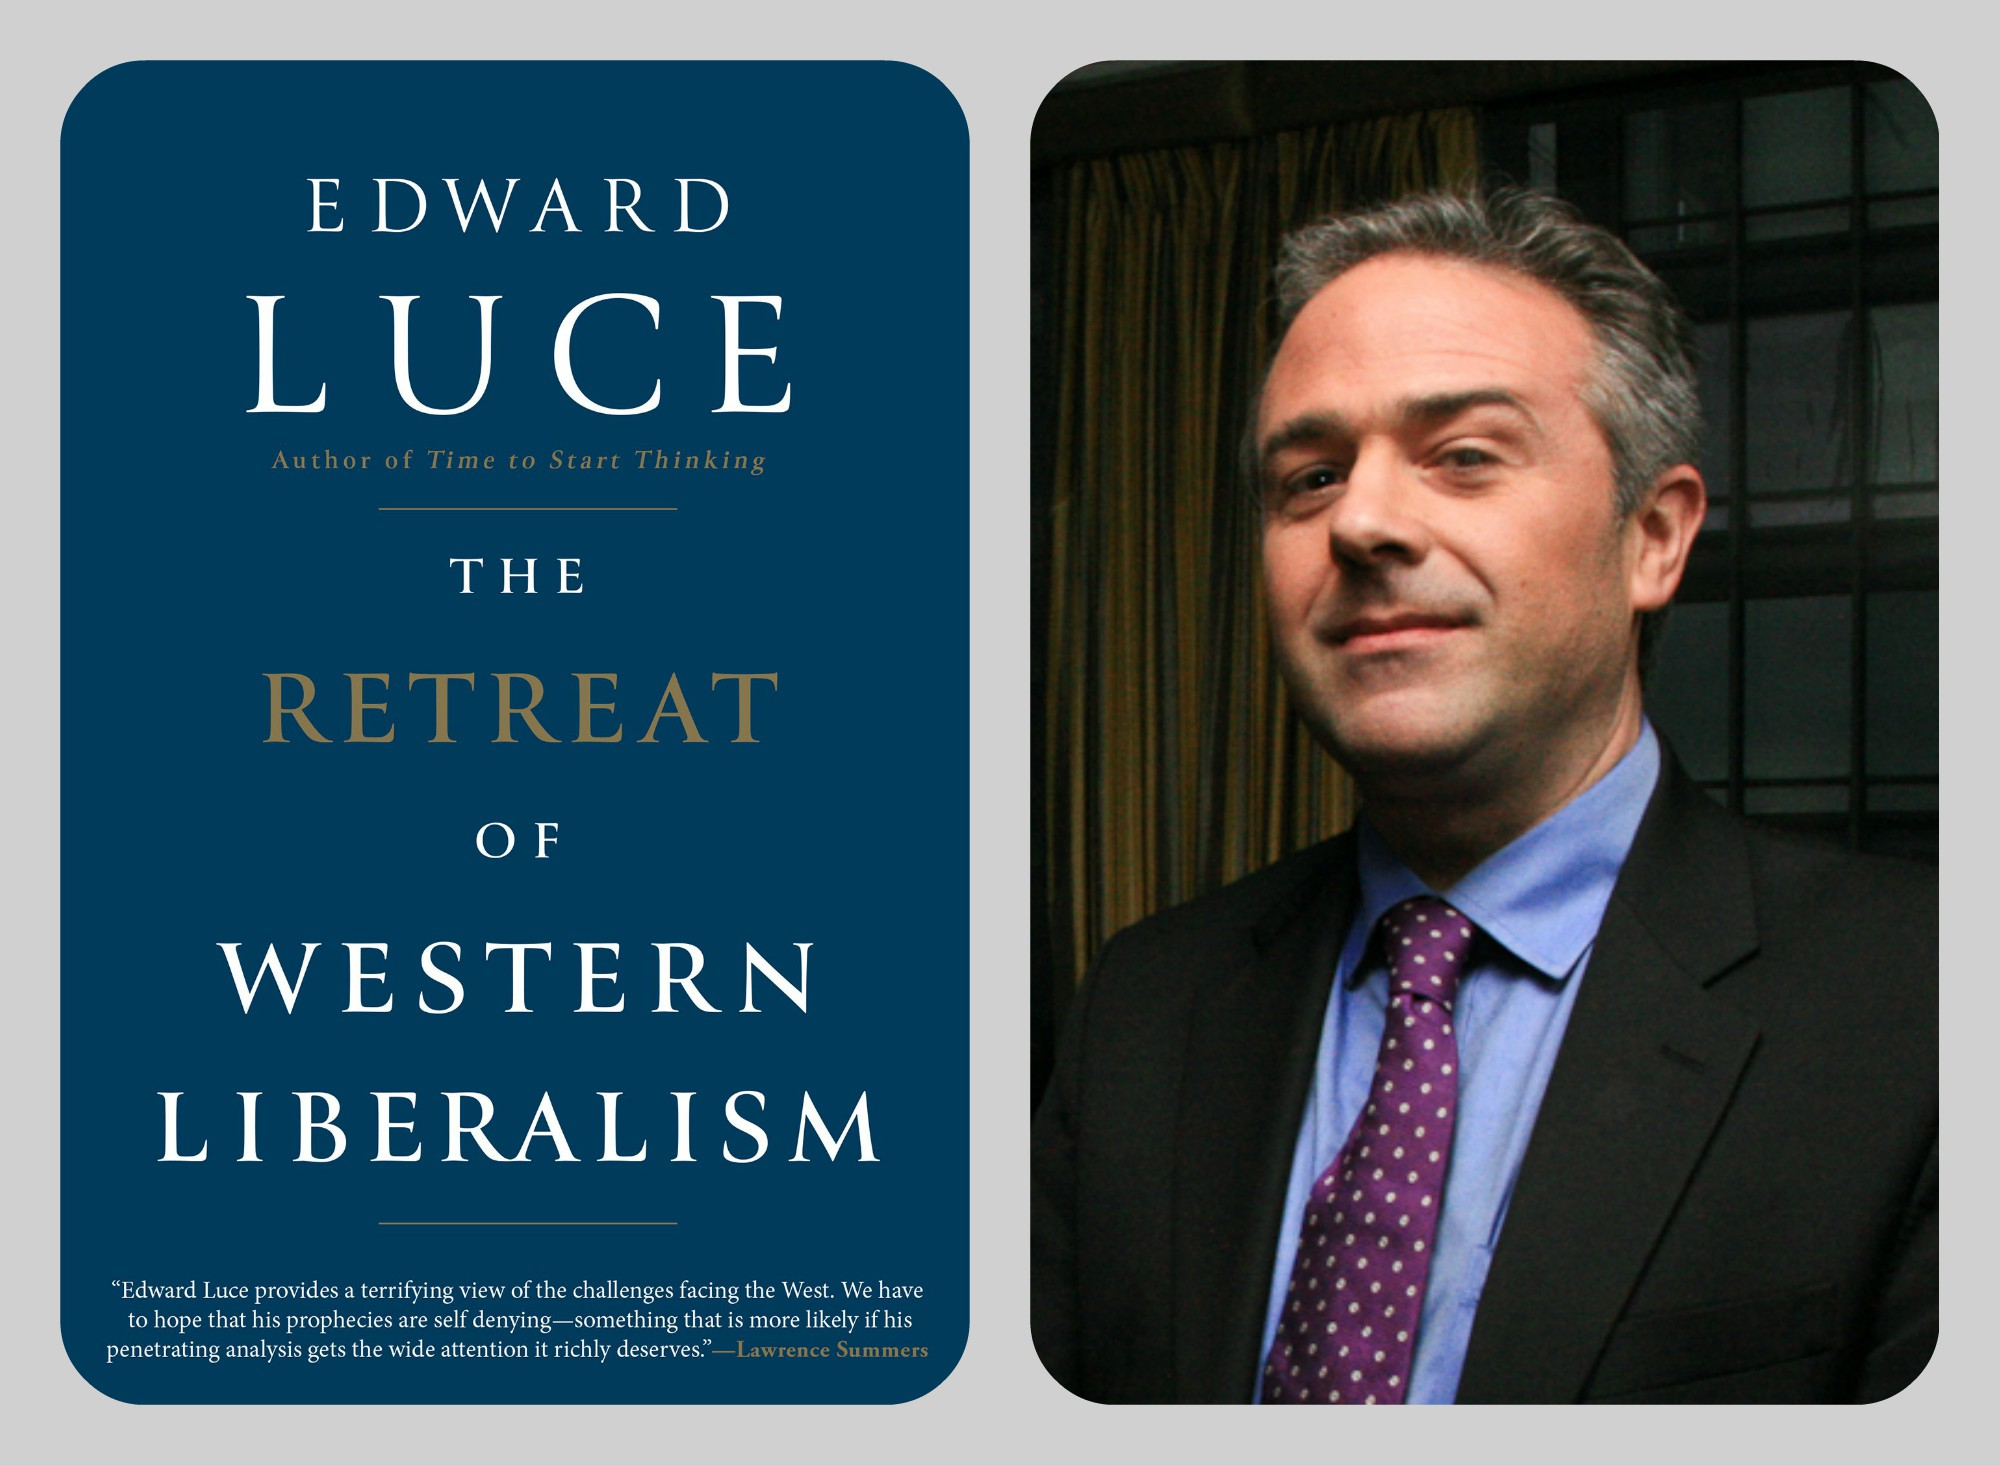 Luce Western Liberalism iPiccy-collage